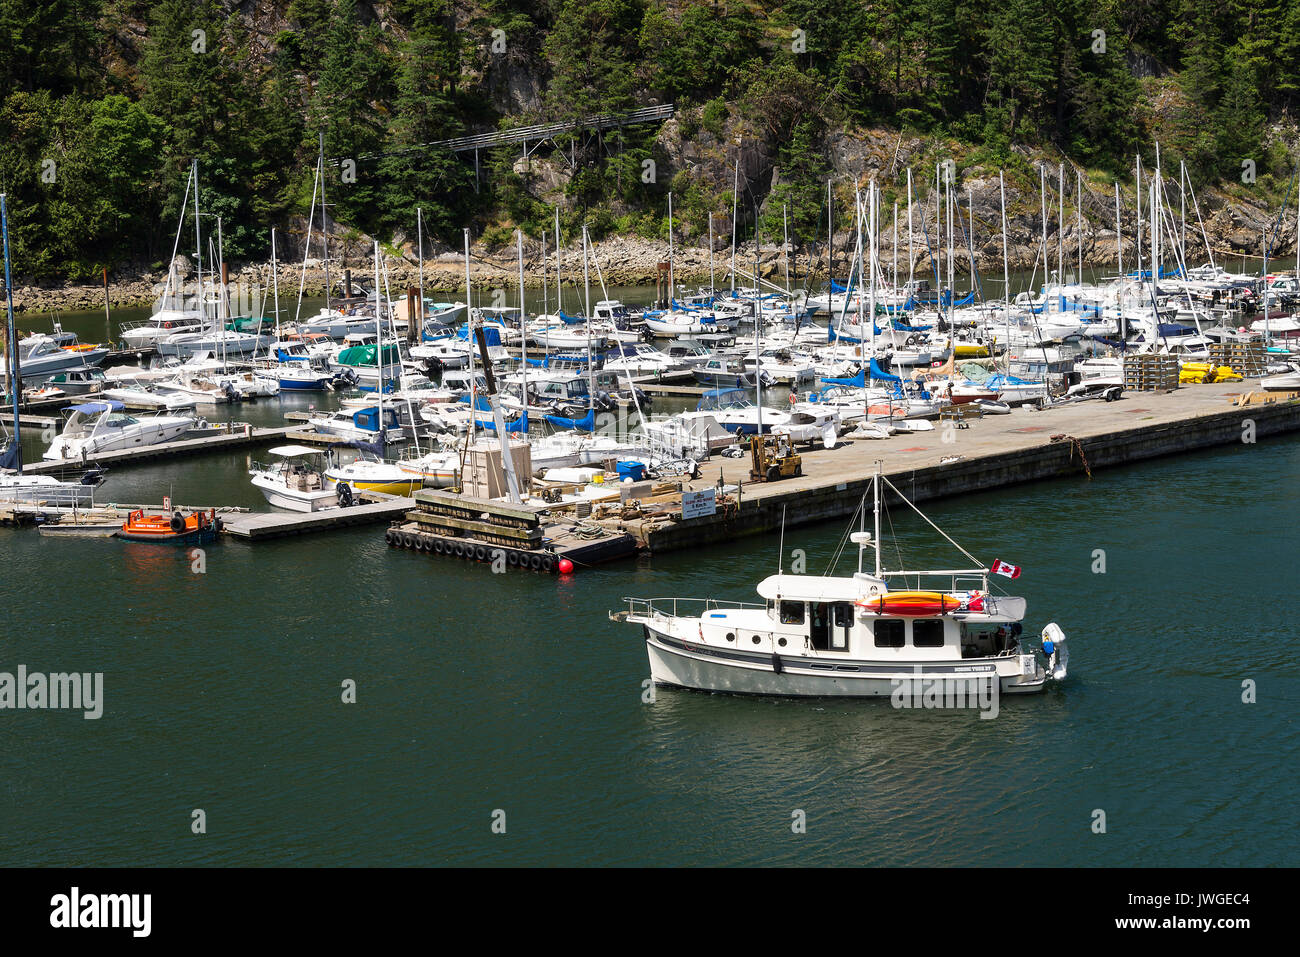 A Marina With Private Yachts ,Cabin Cruisers and Luxury Boats at Horseshoe Bay near BC Ferries Ferry Terminal in British Columbia Canada - Stock Image